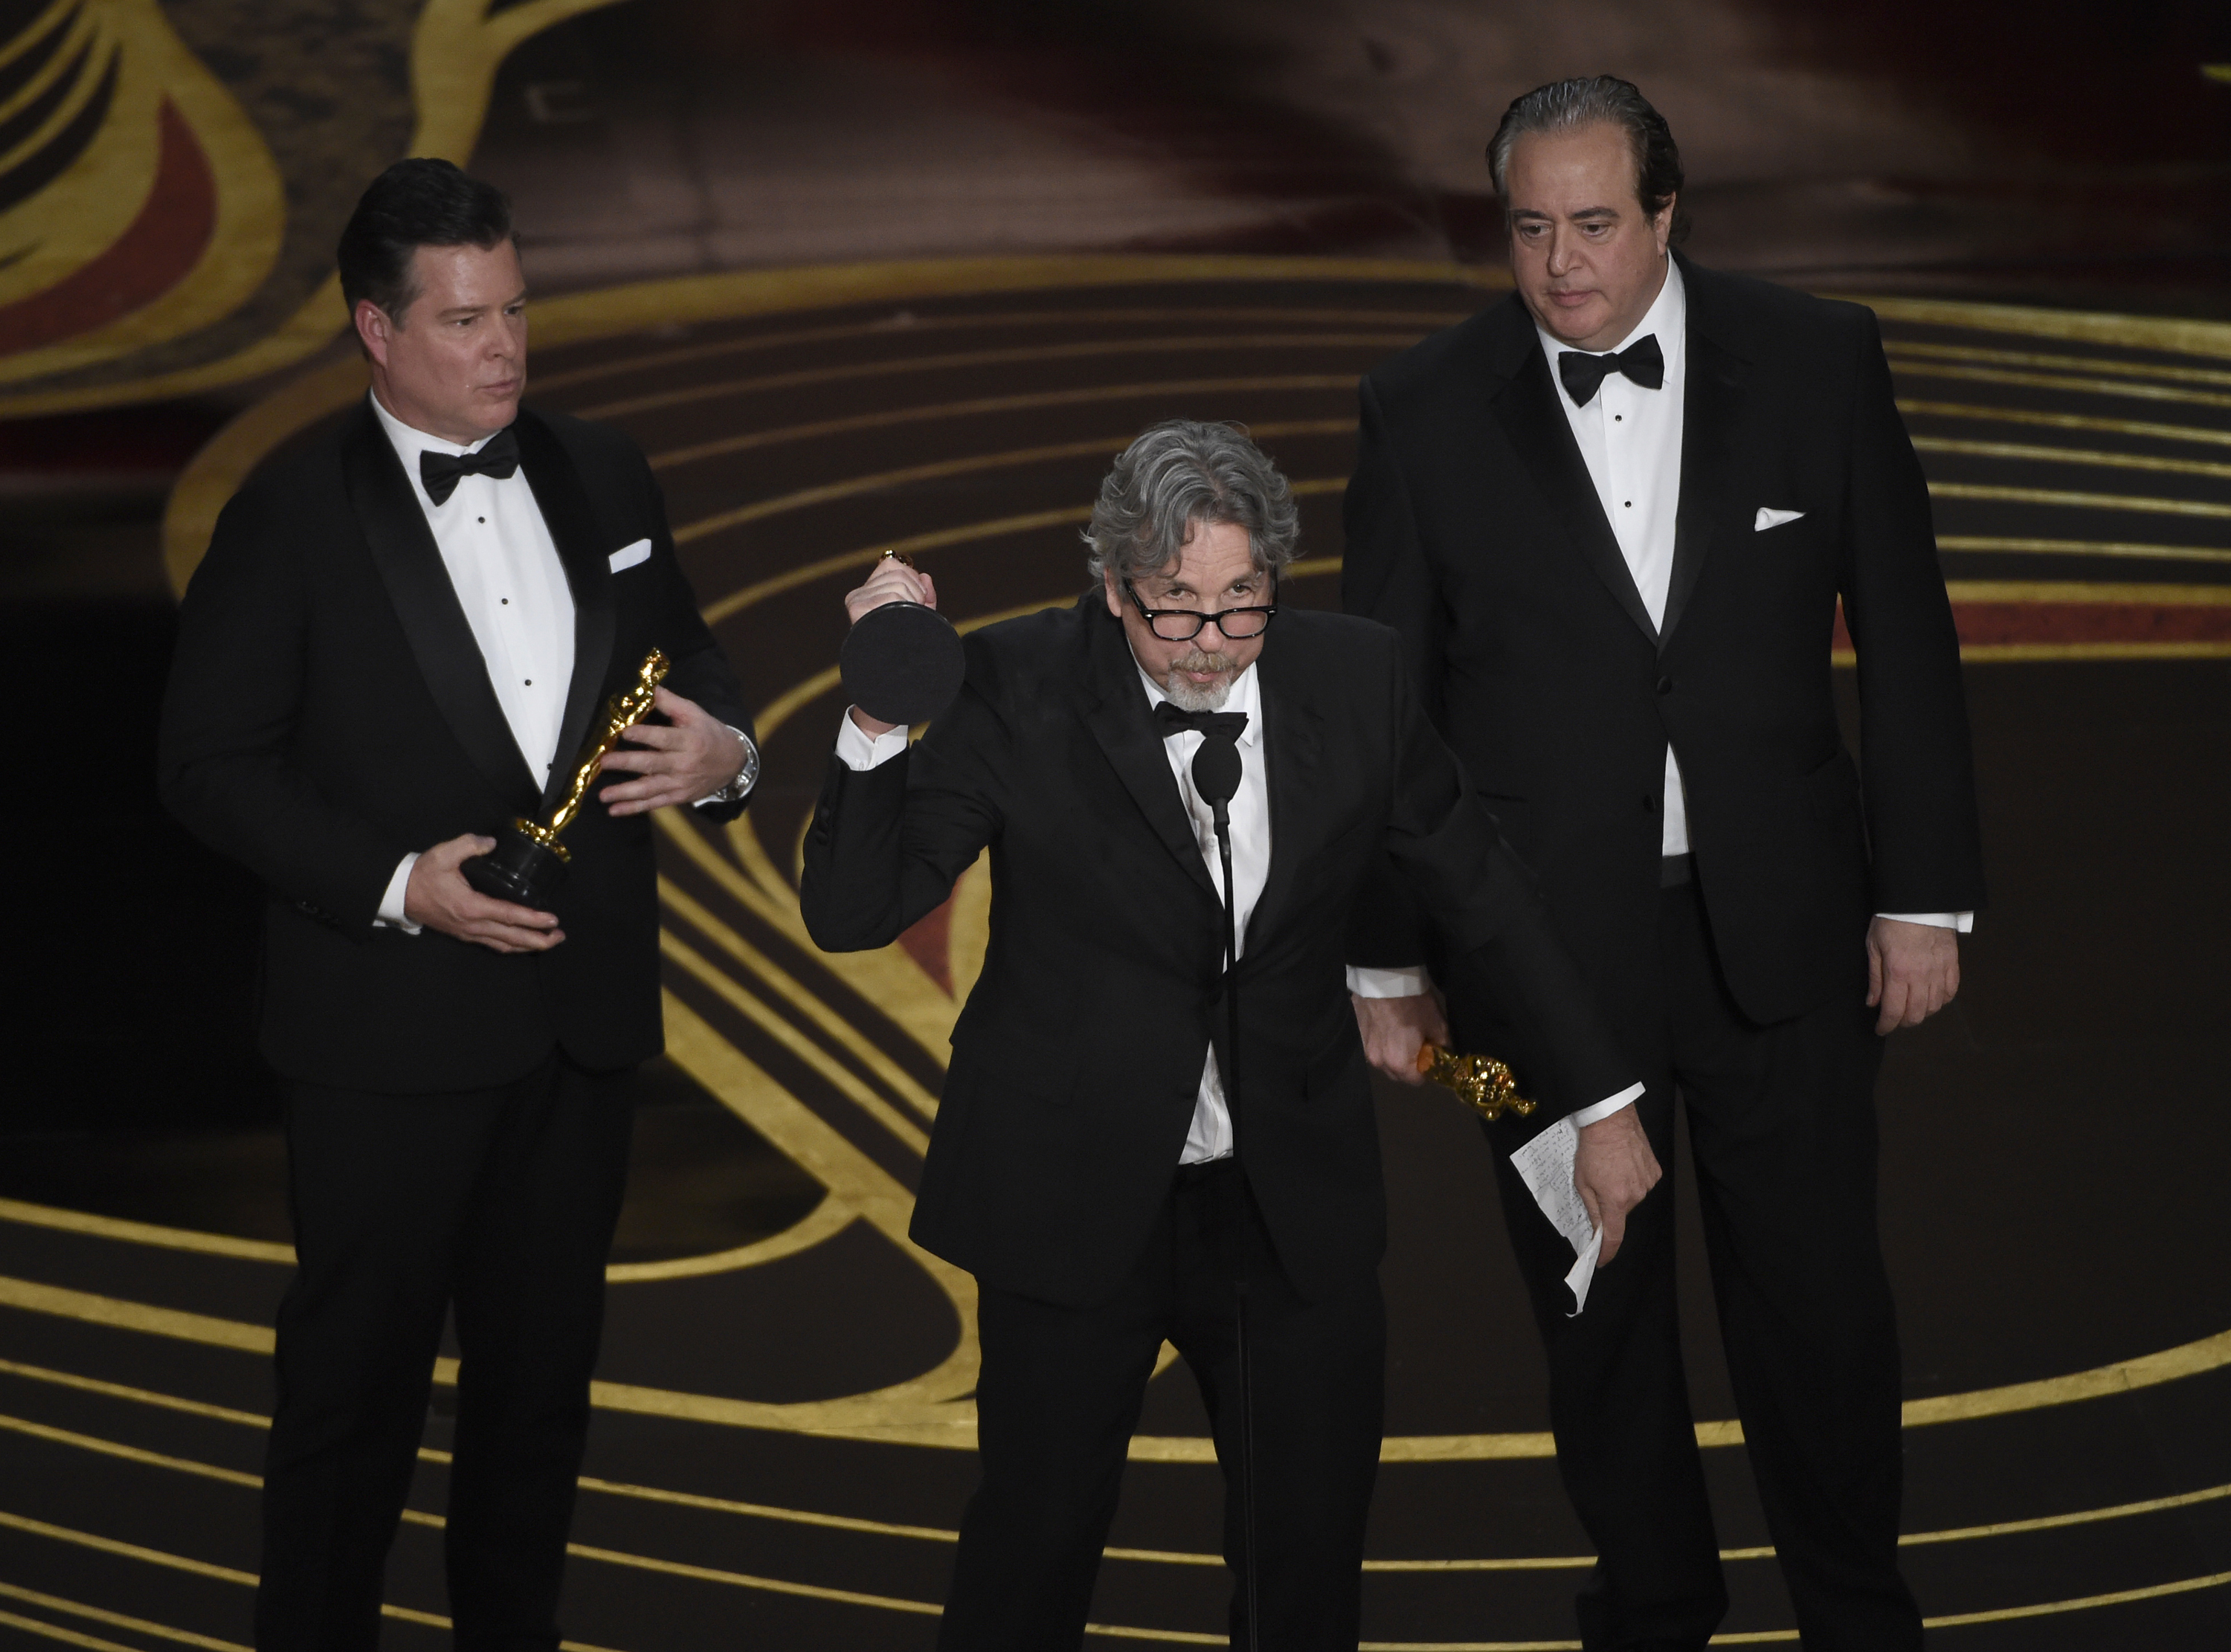 c09af4862c7c Oscars 2019: 'Green Book' wins best picture at the 91st Annual Academy  Awards